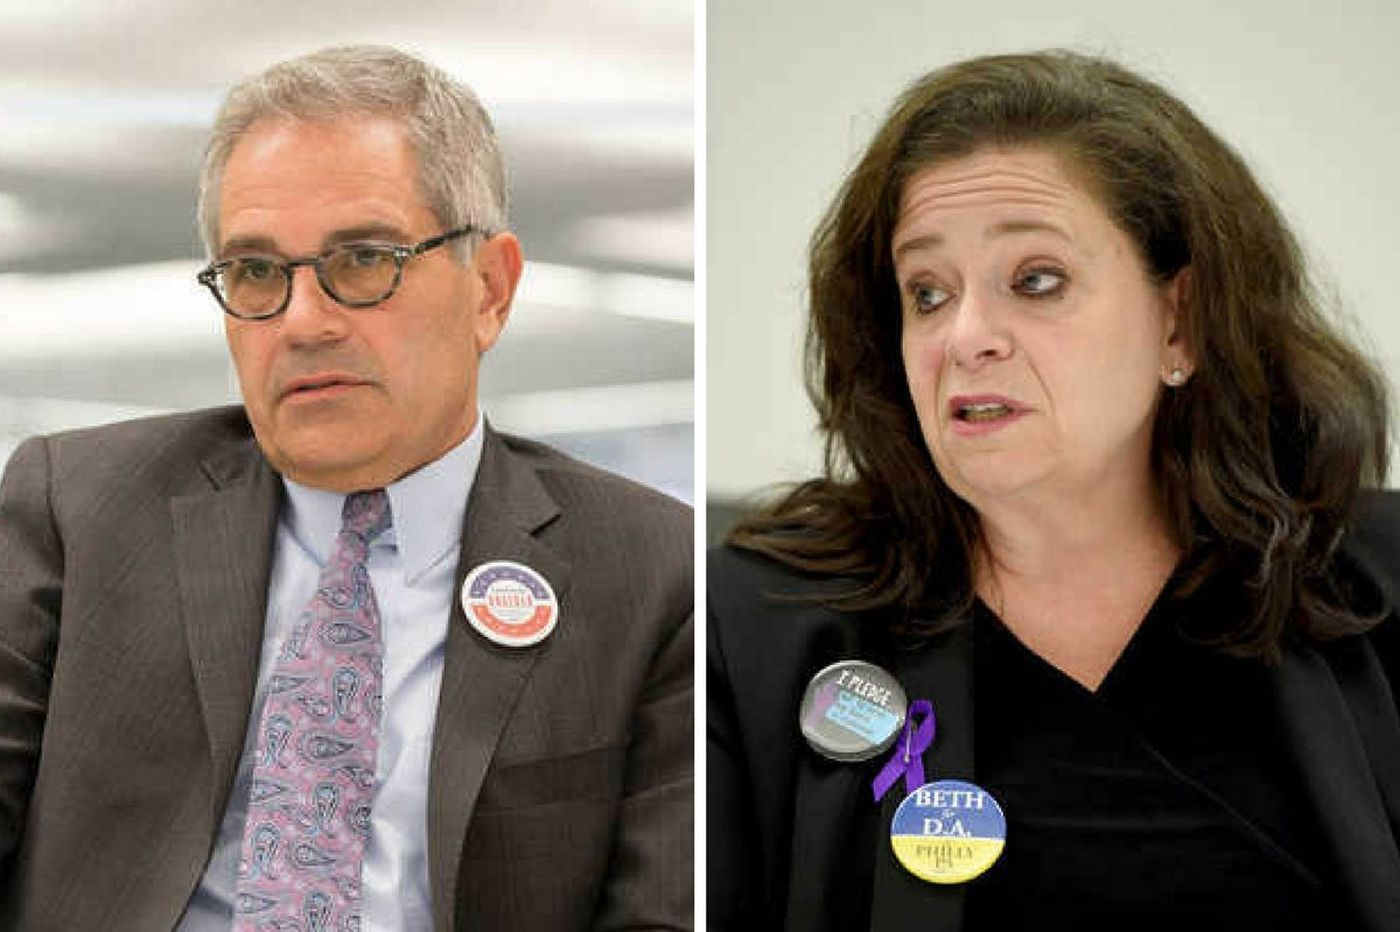 Video: 5 questions with the Philly DA candidates | Editorial Board